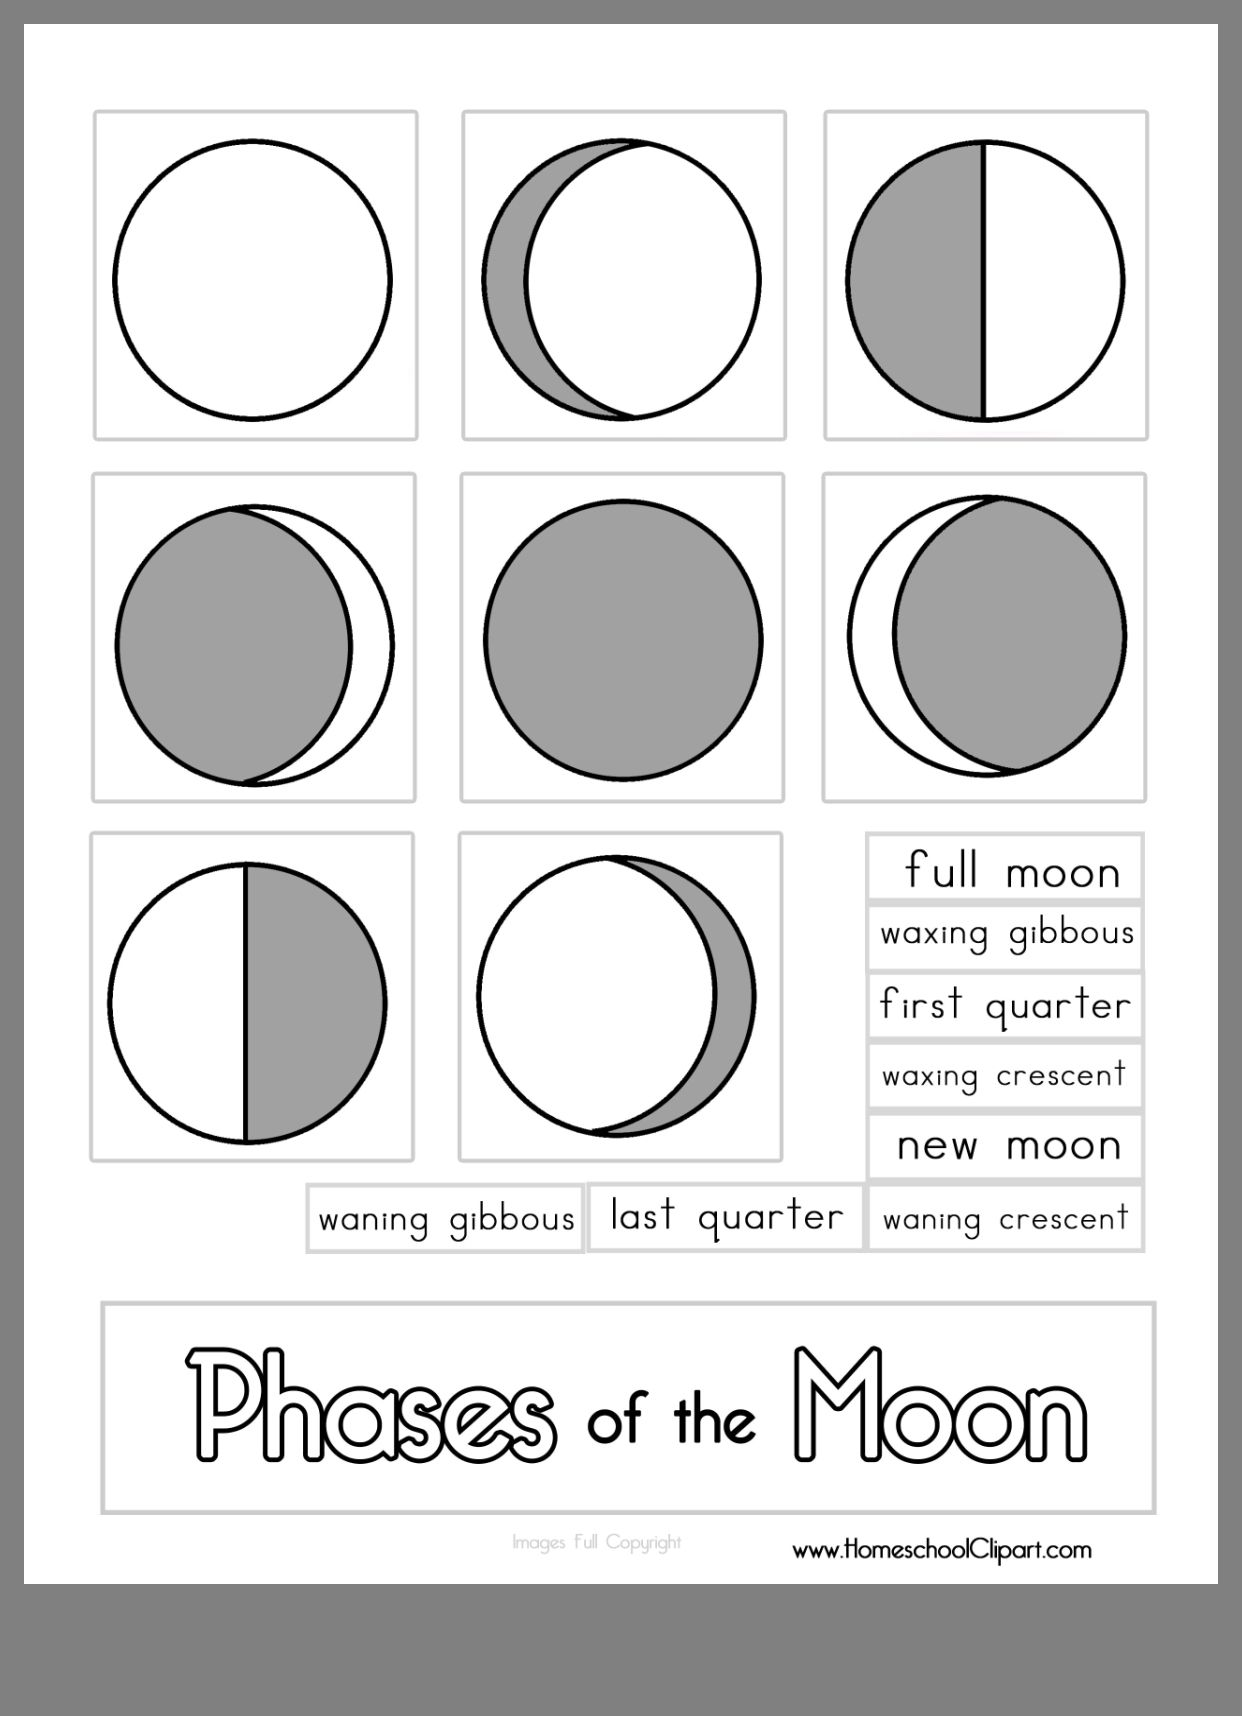 Pin By Amber Hester On Cc Tutor Cycle 2 Fall Stem Activities Moon Coloring Pages Science Learning Centers [ 1716 x 1242 Pixel ]